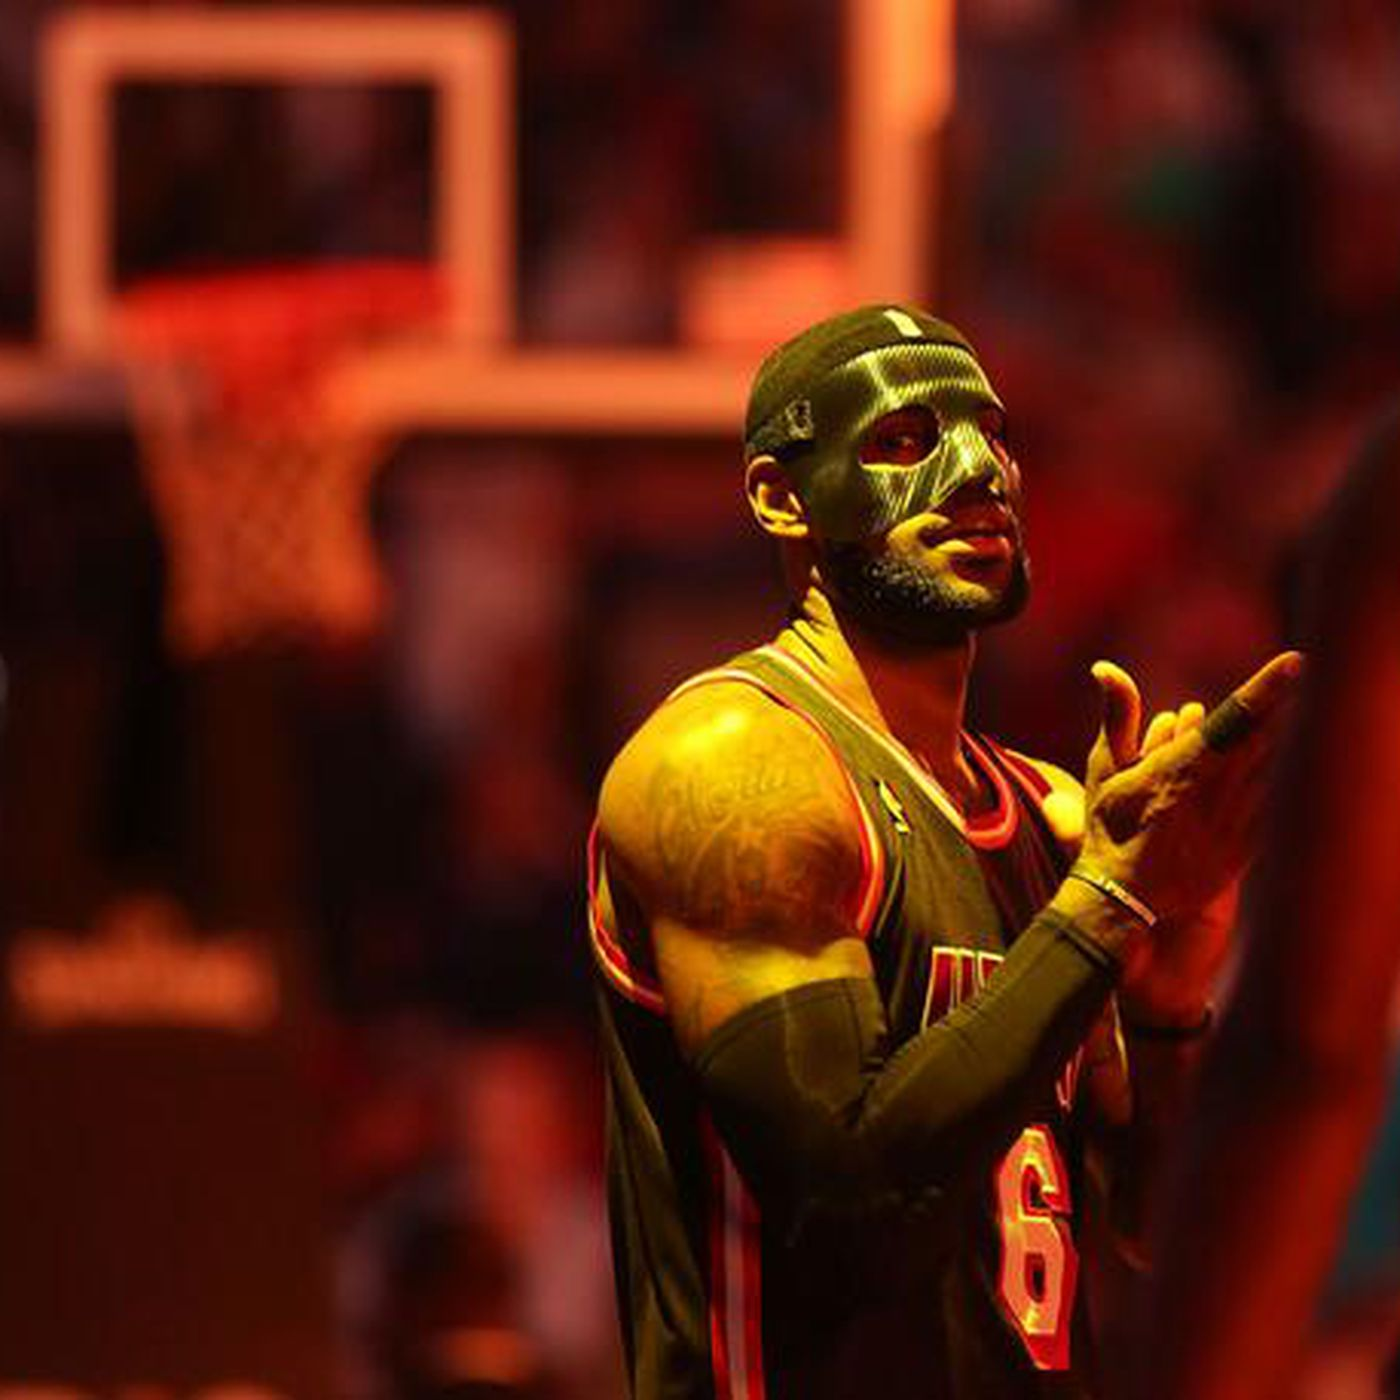 The legend of the black mask in the NBA - SBNation.com